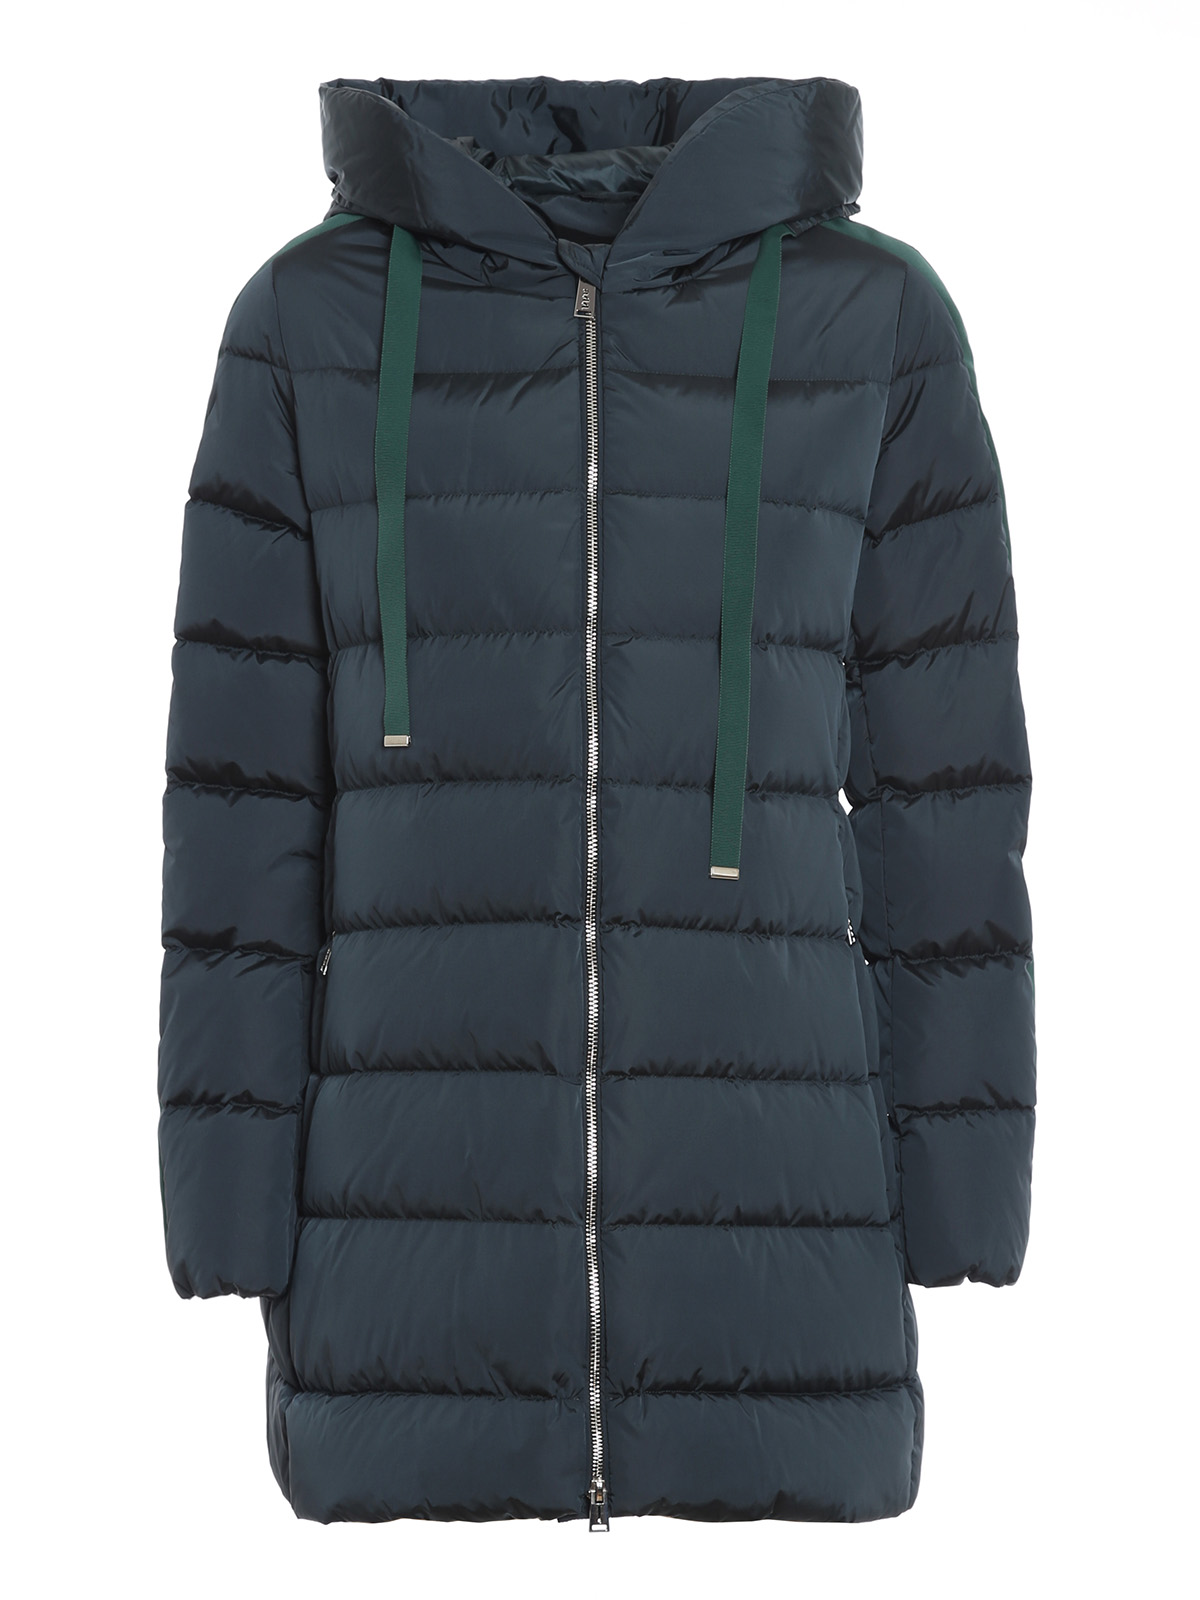 Add MATT EFFECT GREEN PUFFER JACKET